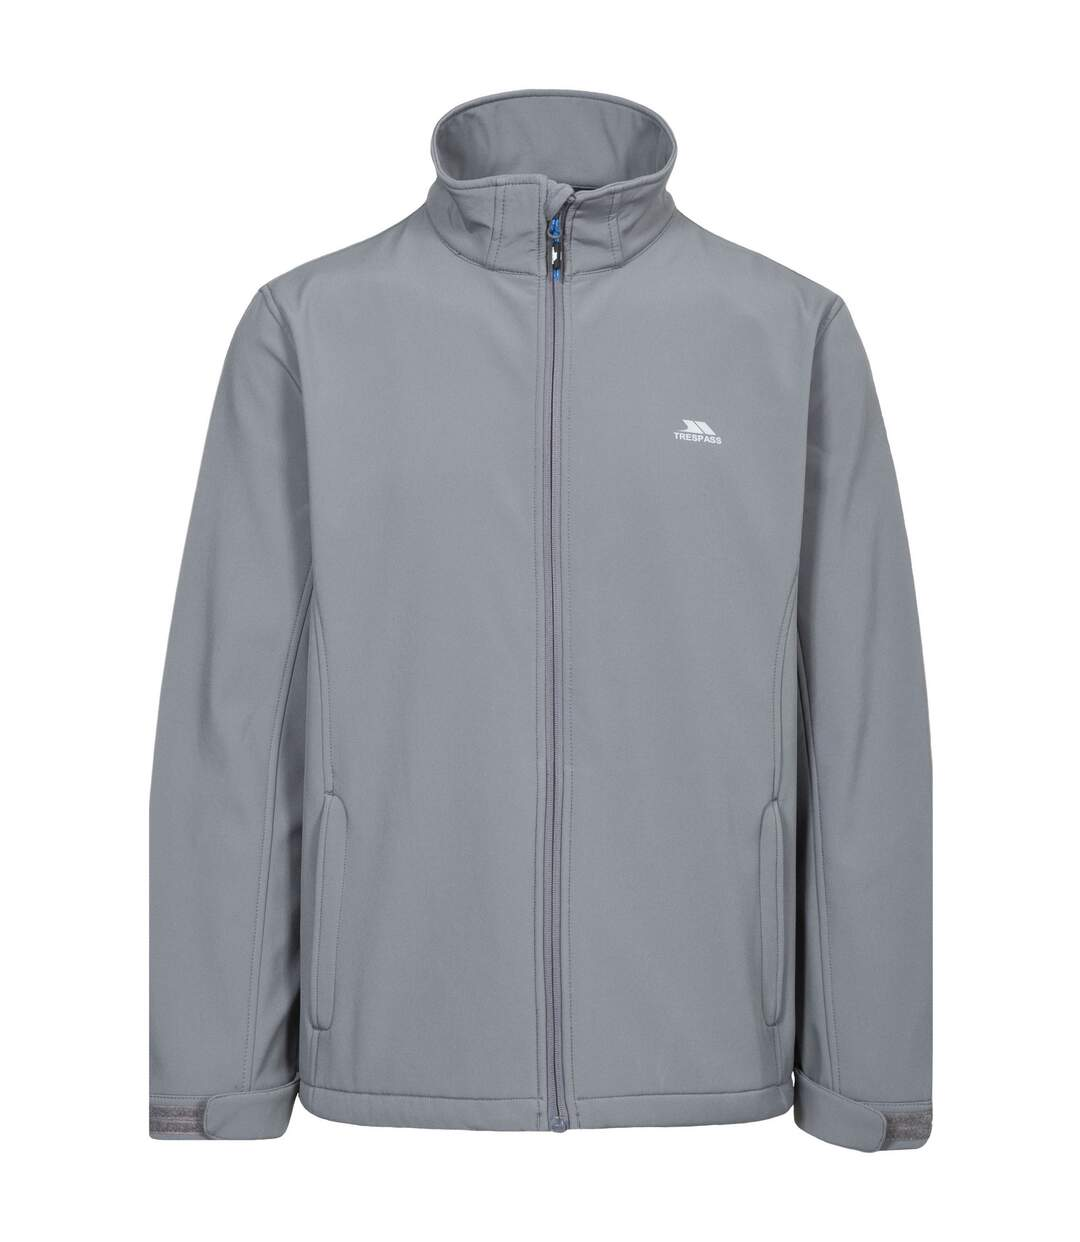 Trespass Mens Vander Softshell Jacket (Bright Blue) - UTTP3334